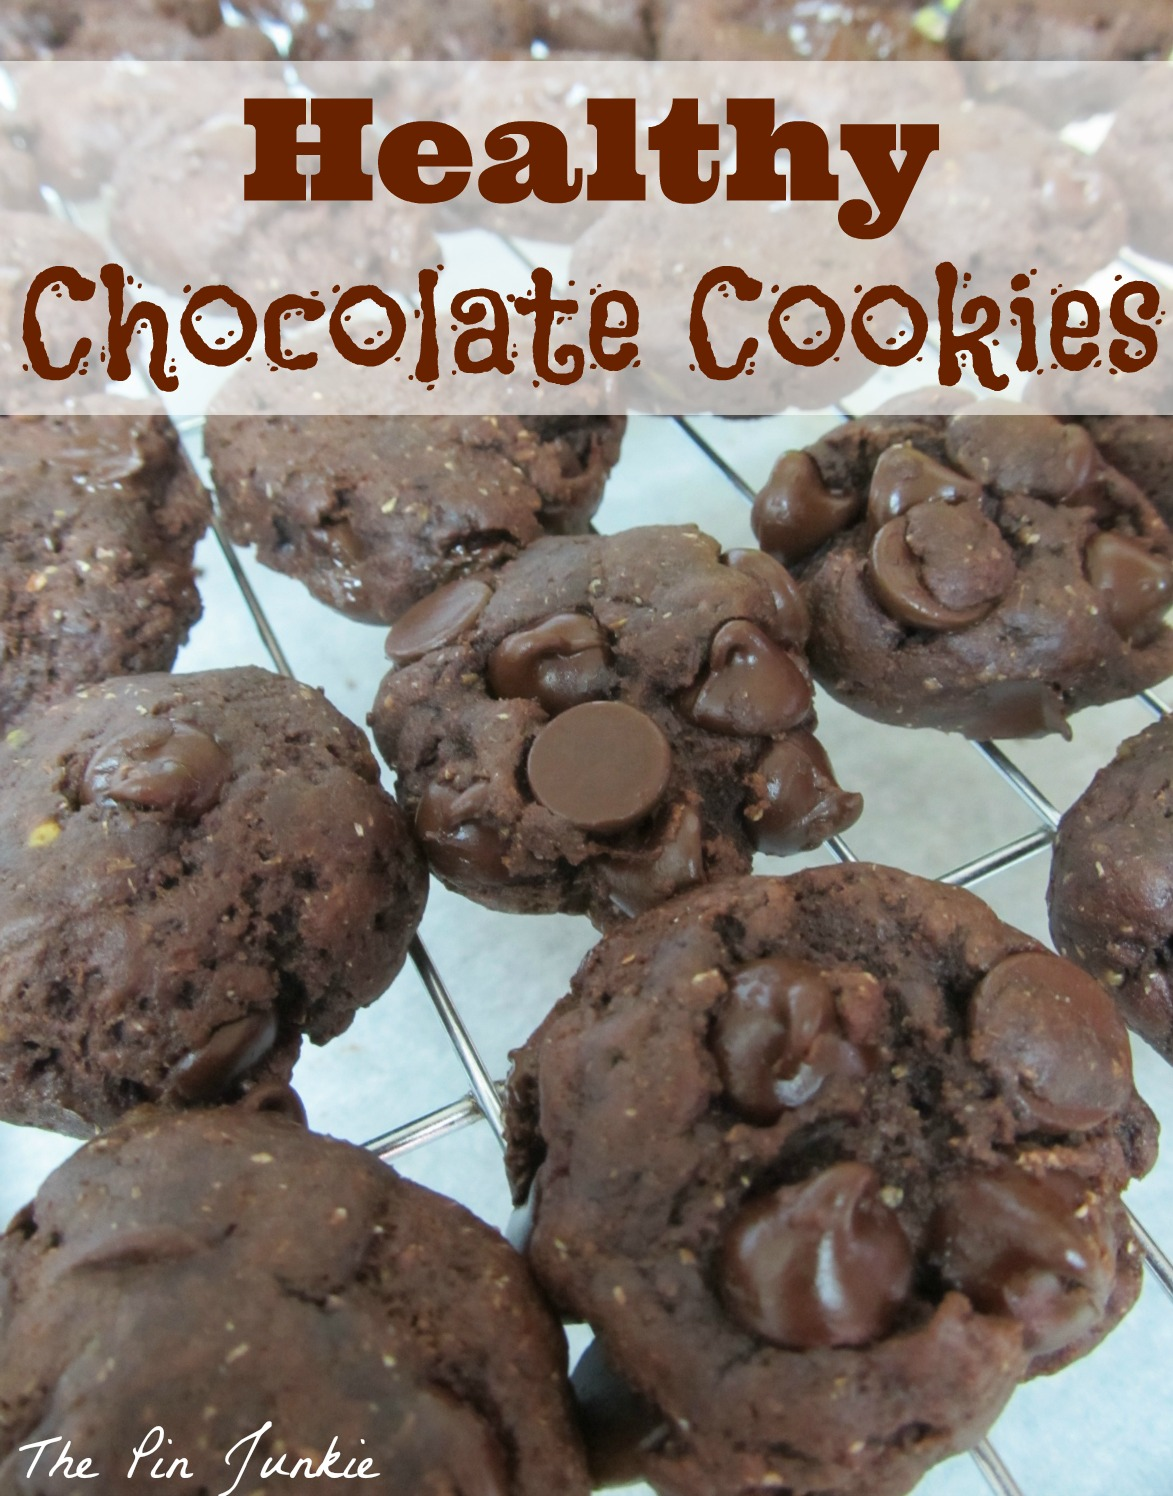 http://www.thepinjunkie.com/2013/06/healthy-chocolate-chip-cookies.html